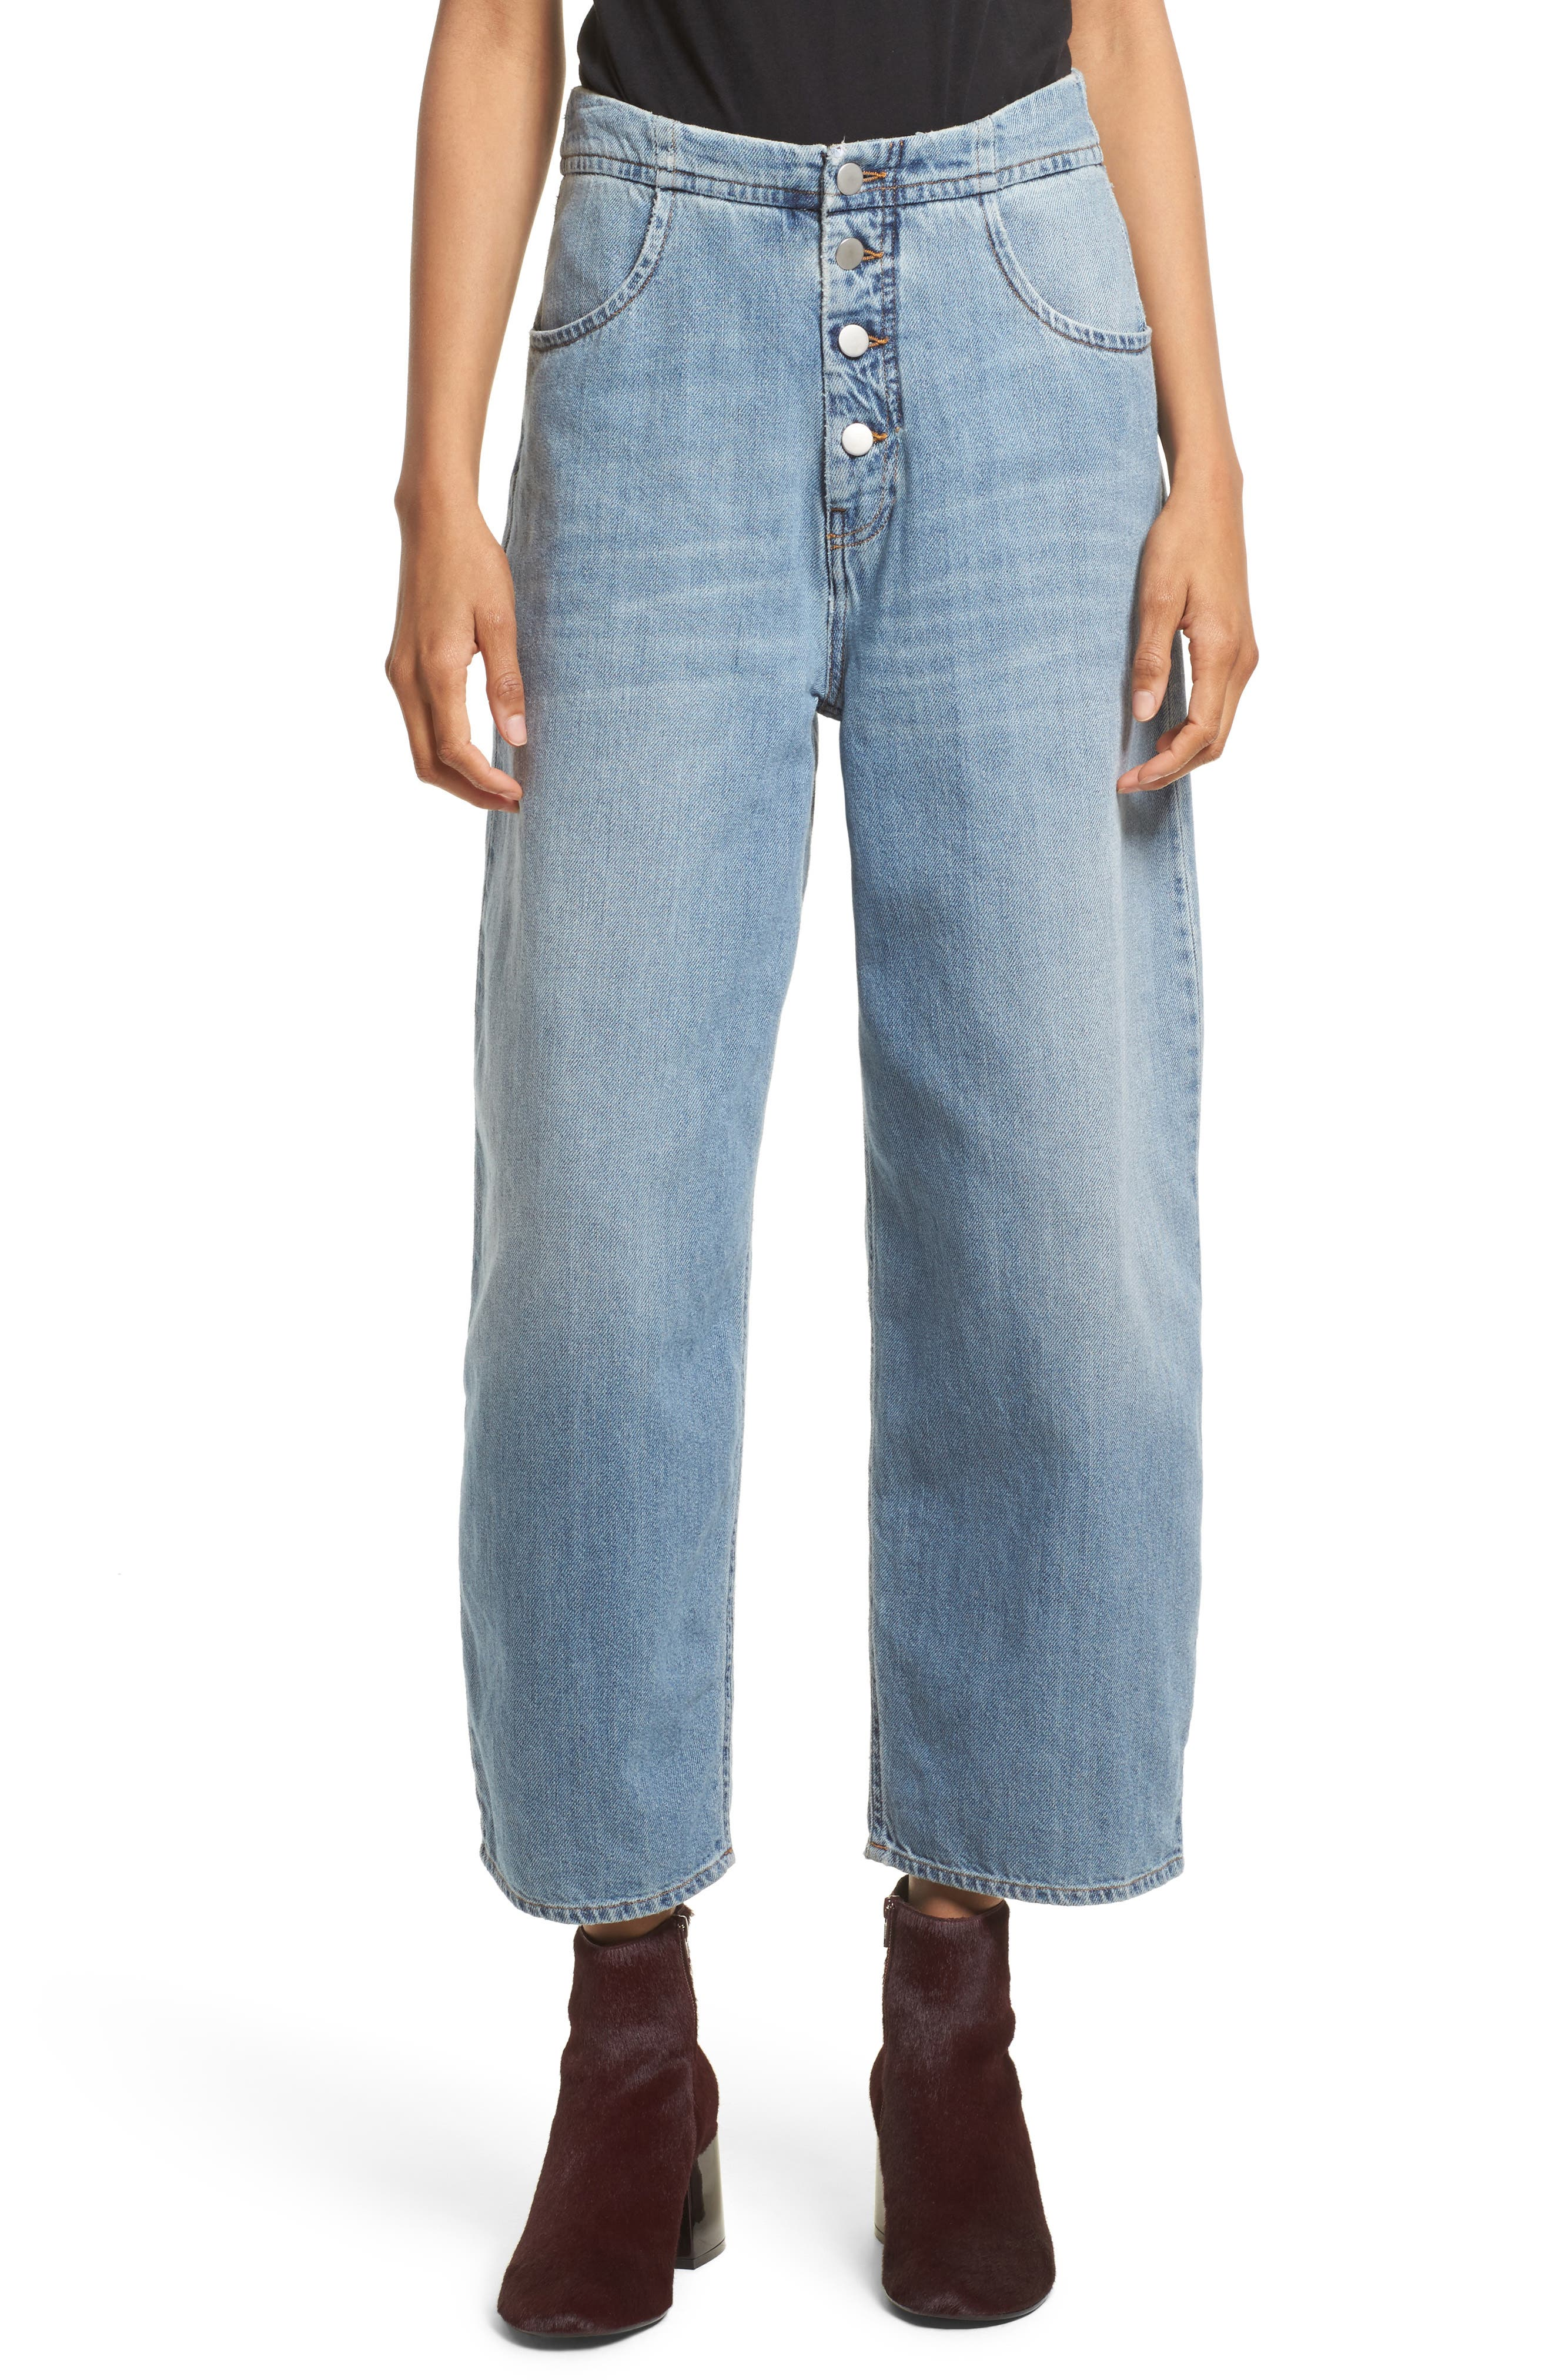 MM6 Maison Margiela Relaxed Fit Crop Jeans